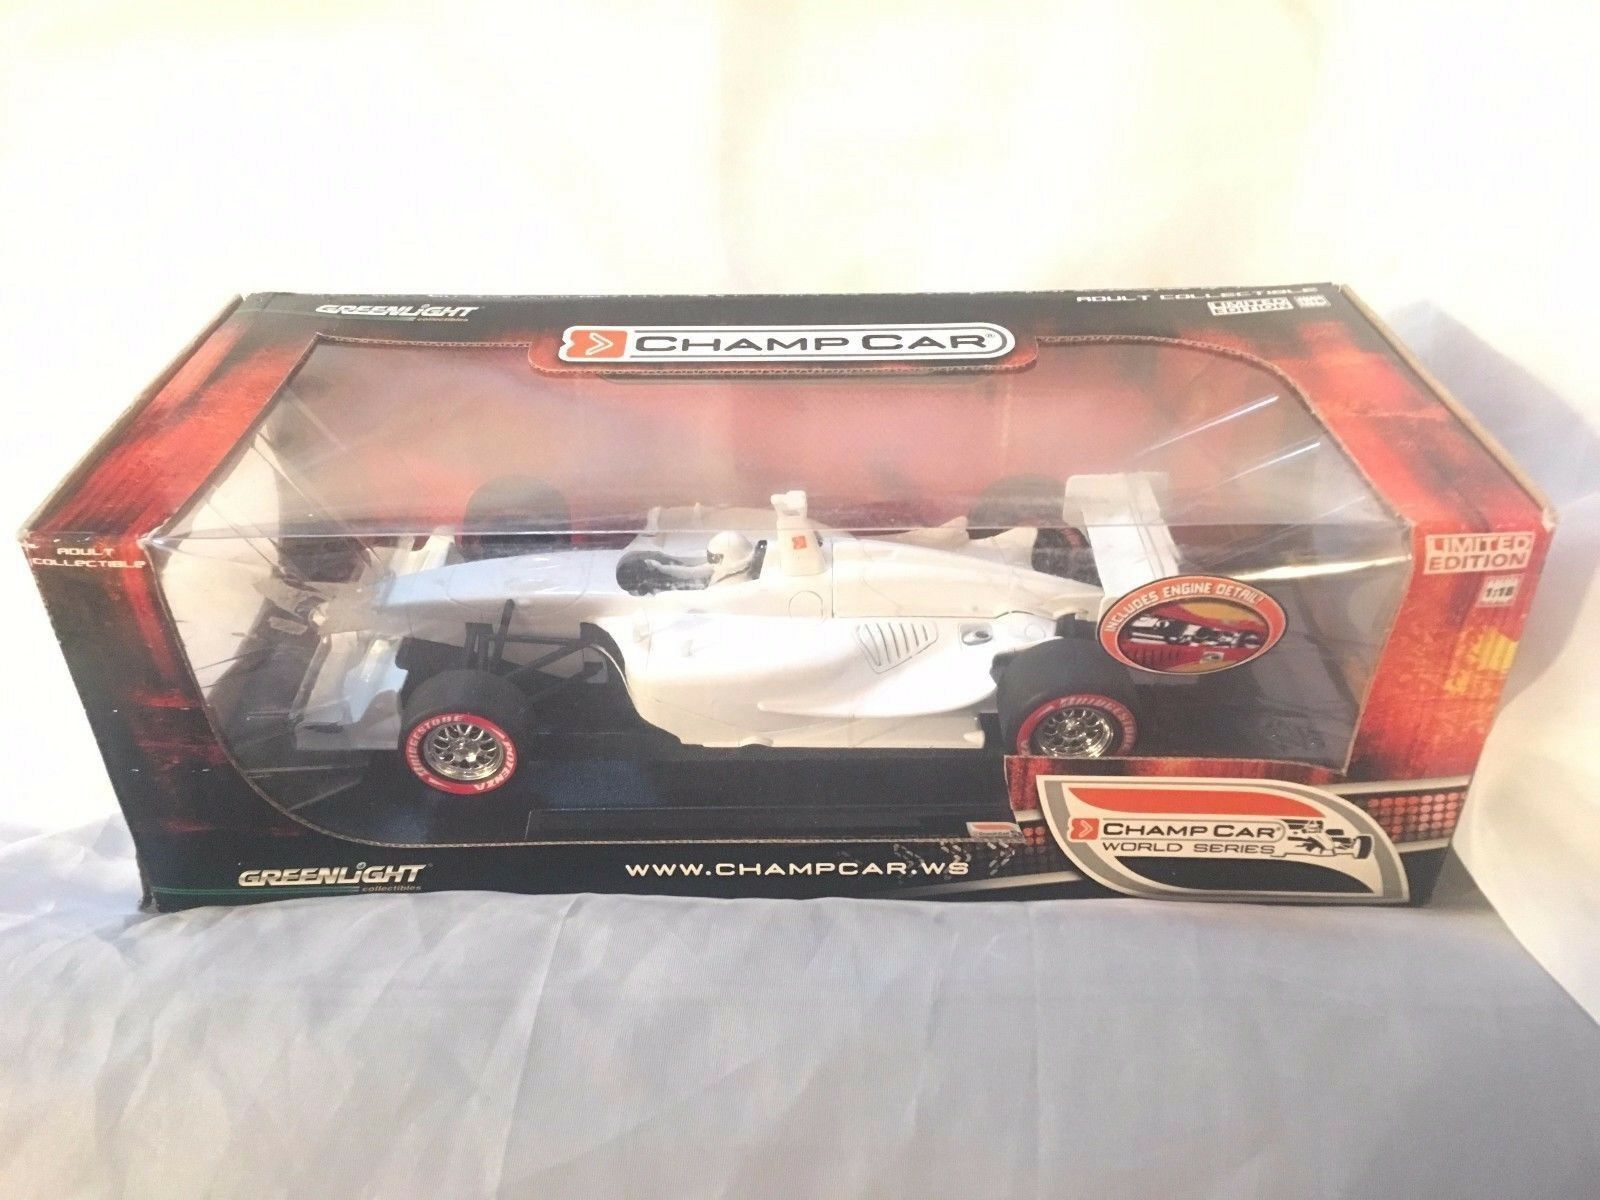 Greenlight COLLECTION  1 18 LIMITED EDITION CHAMP CHAMP CHAMP CAR WORLD SERIES,NEW,SEALED 7d7bc8